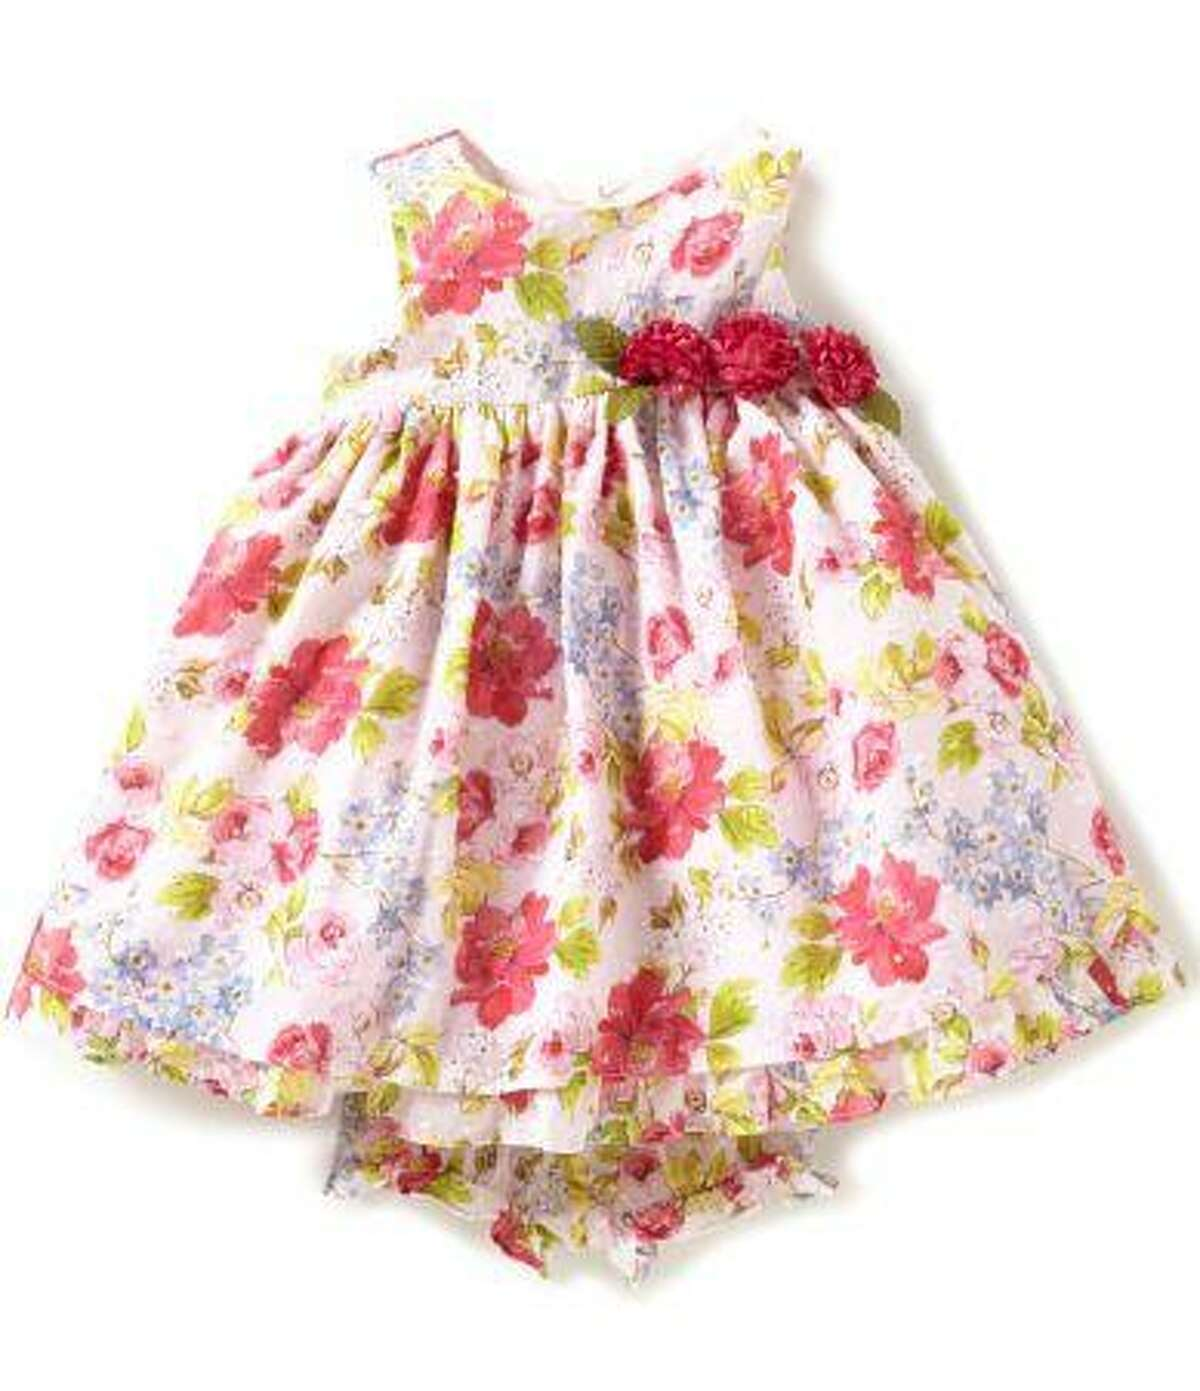 The company Pastourell is recalling about 2,800 Laura Ashley girl's dresses because the flower petals can detach, posing a choking hazard to children. Photo courtesy of the Consumer Product Safety Commission.